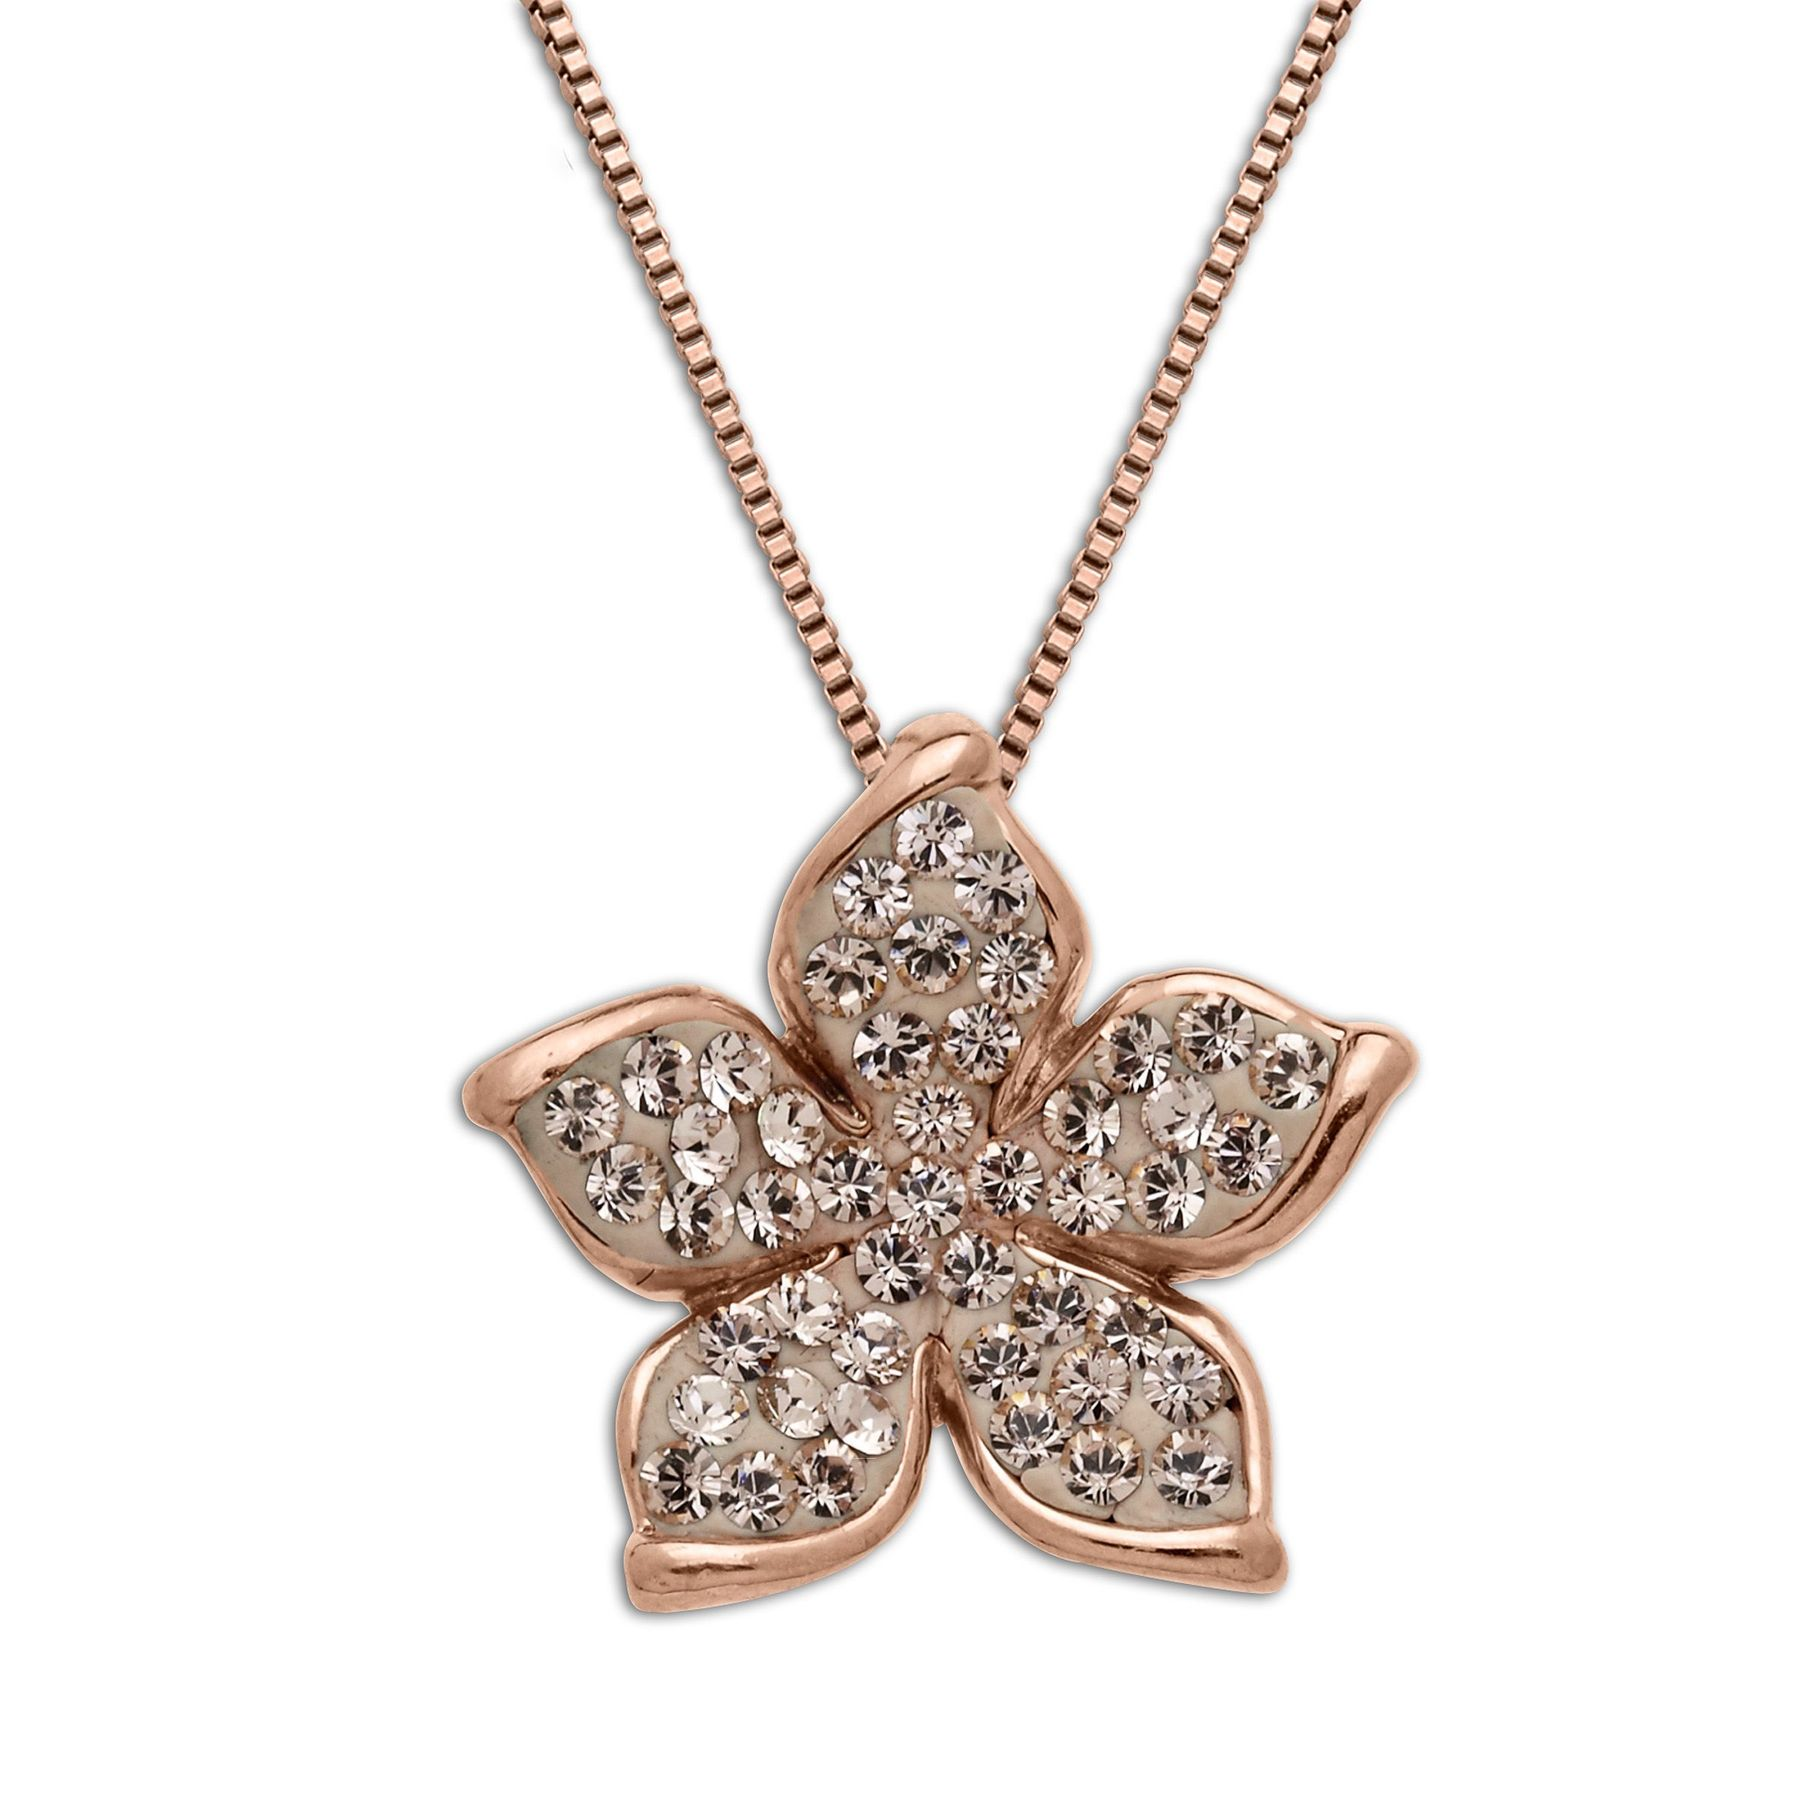 cm santorini follie pendant folli crystal flower gold en hires rose stone center plated